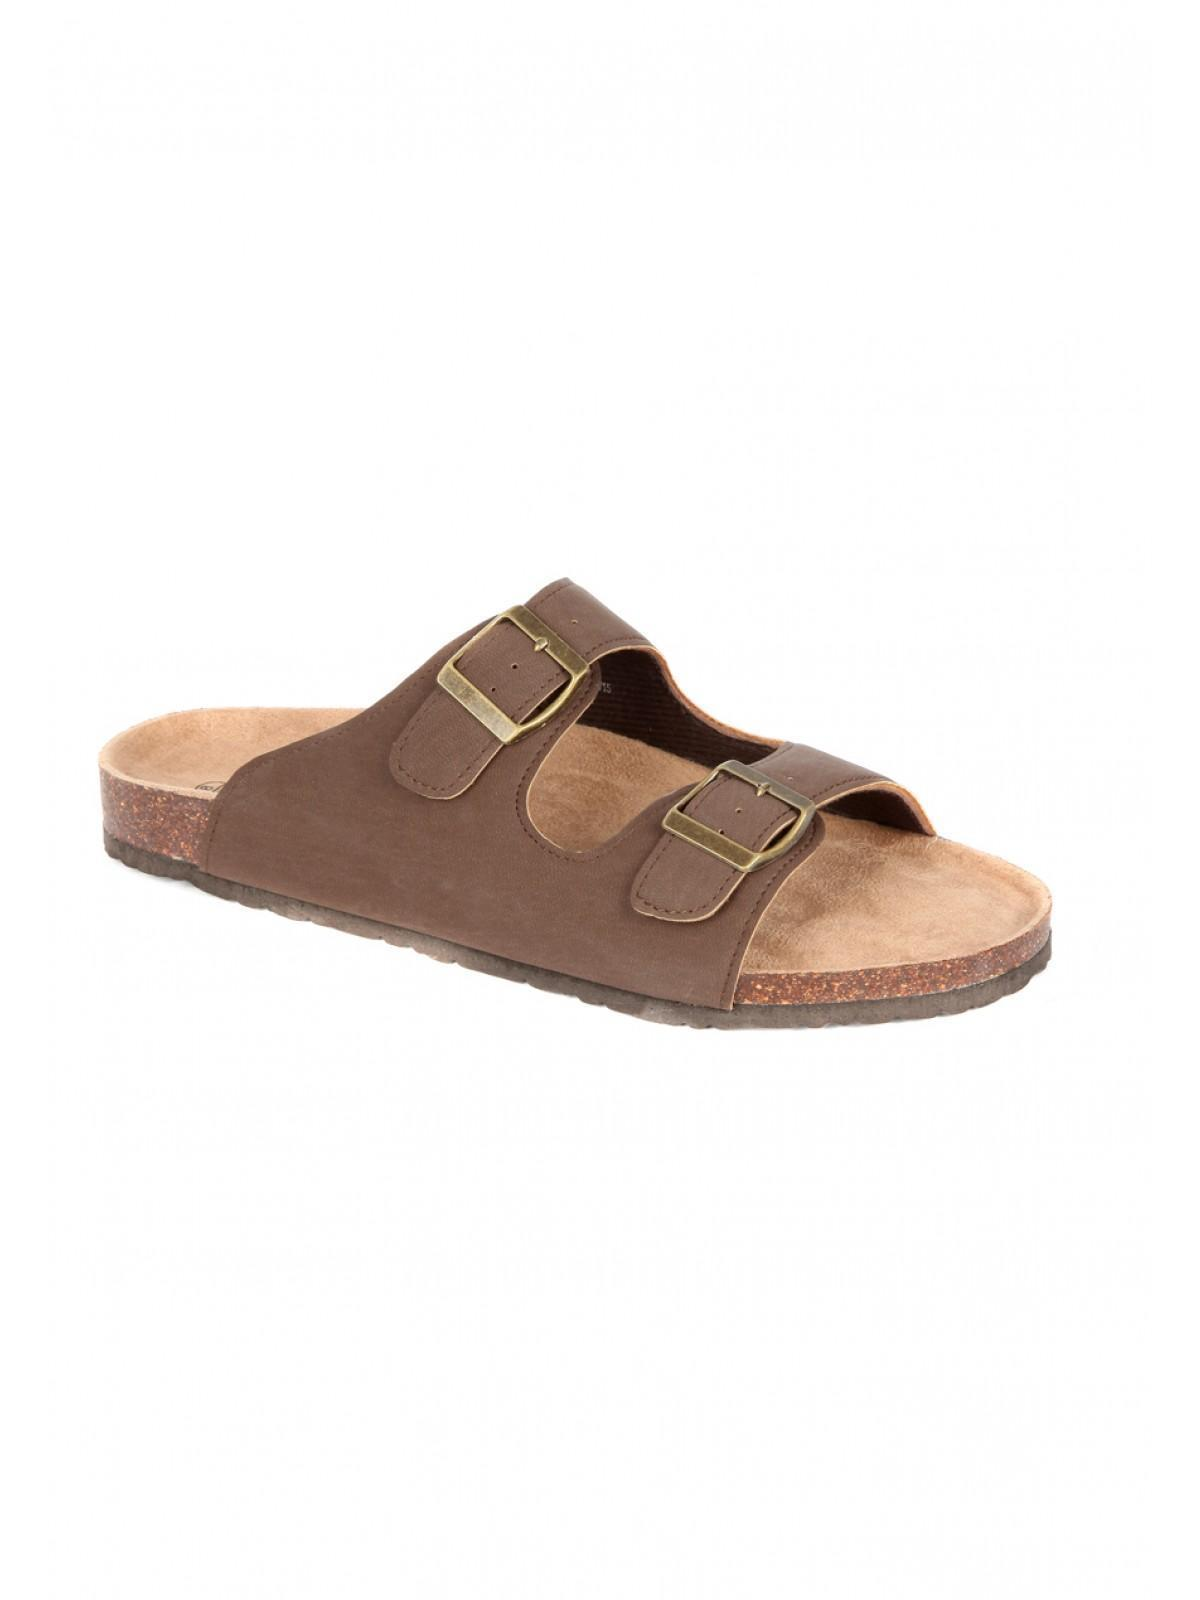 74c98bef634b Home  Mens Double Strap Footbed Sandals. Back. PreviousNext